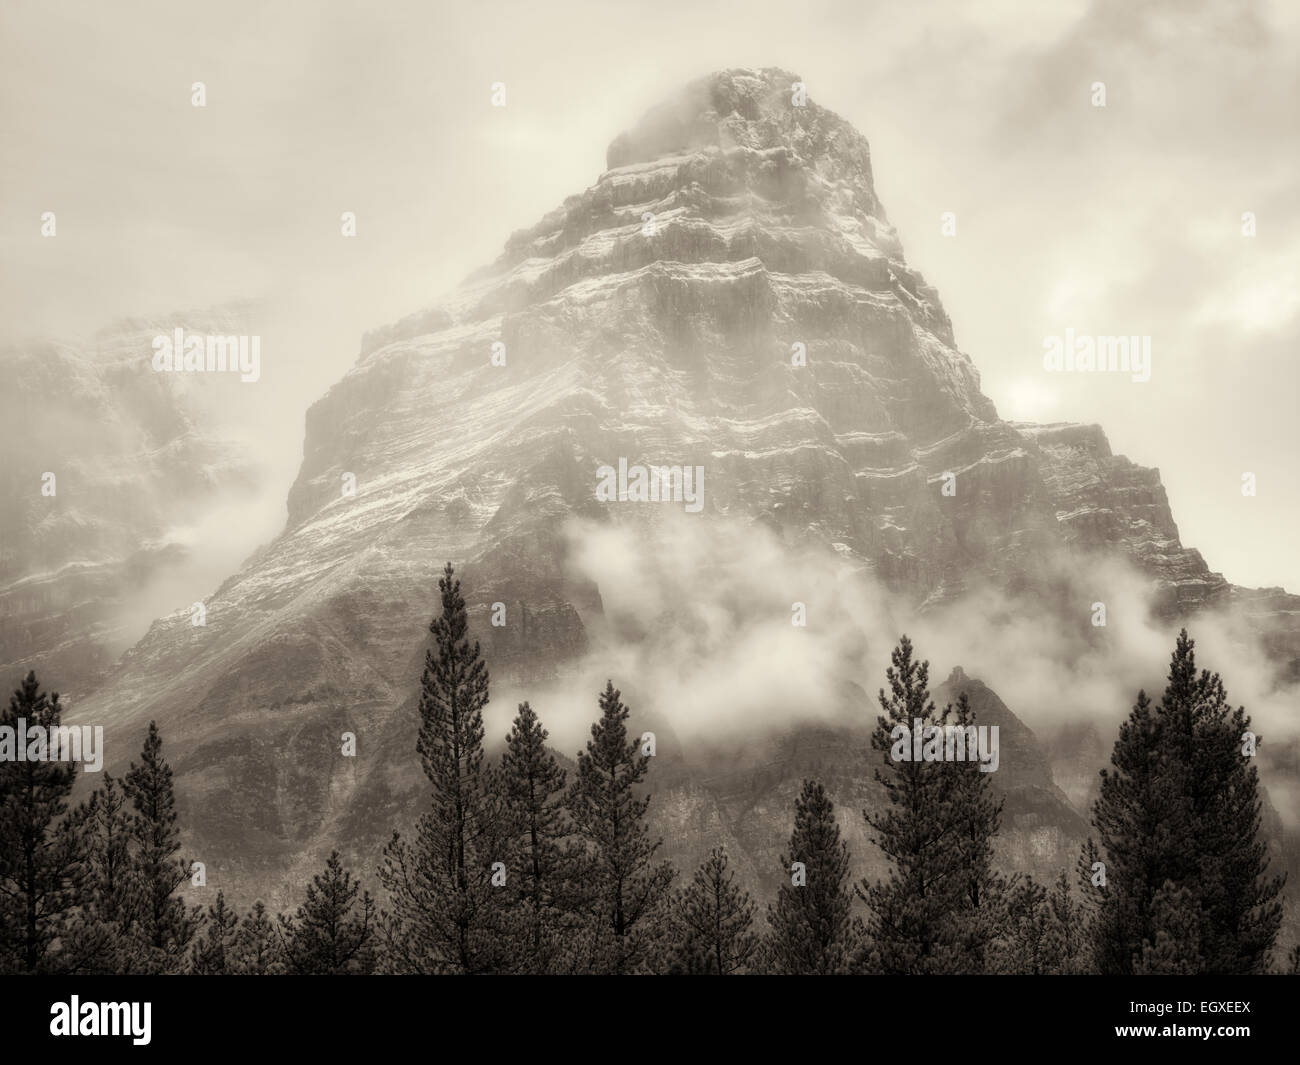 Mt. Chephren in fog and rain/snow. Banff National Park, Alberta, Canada - Stock Image